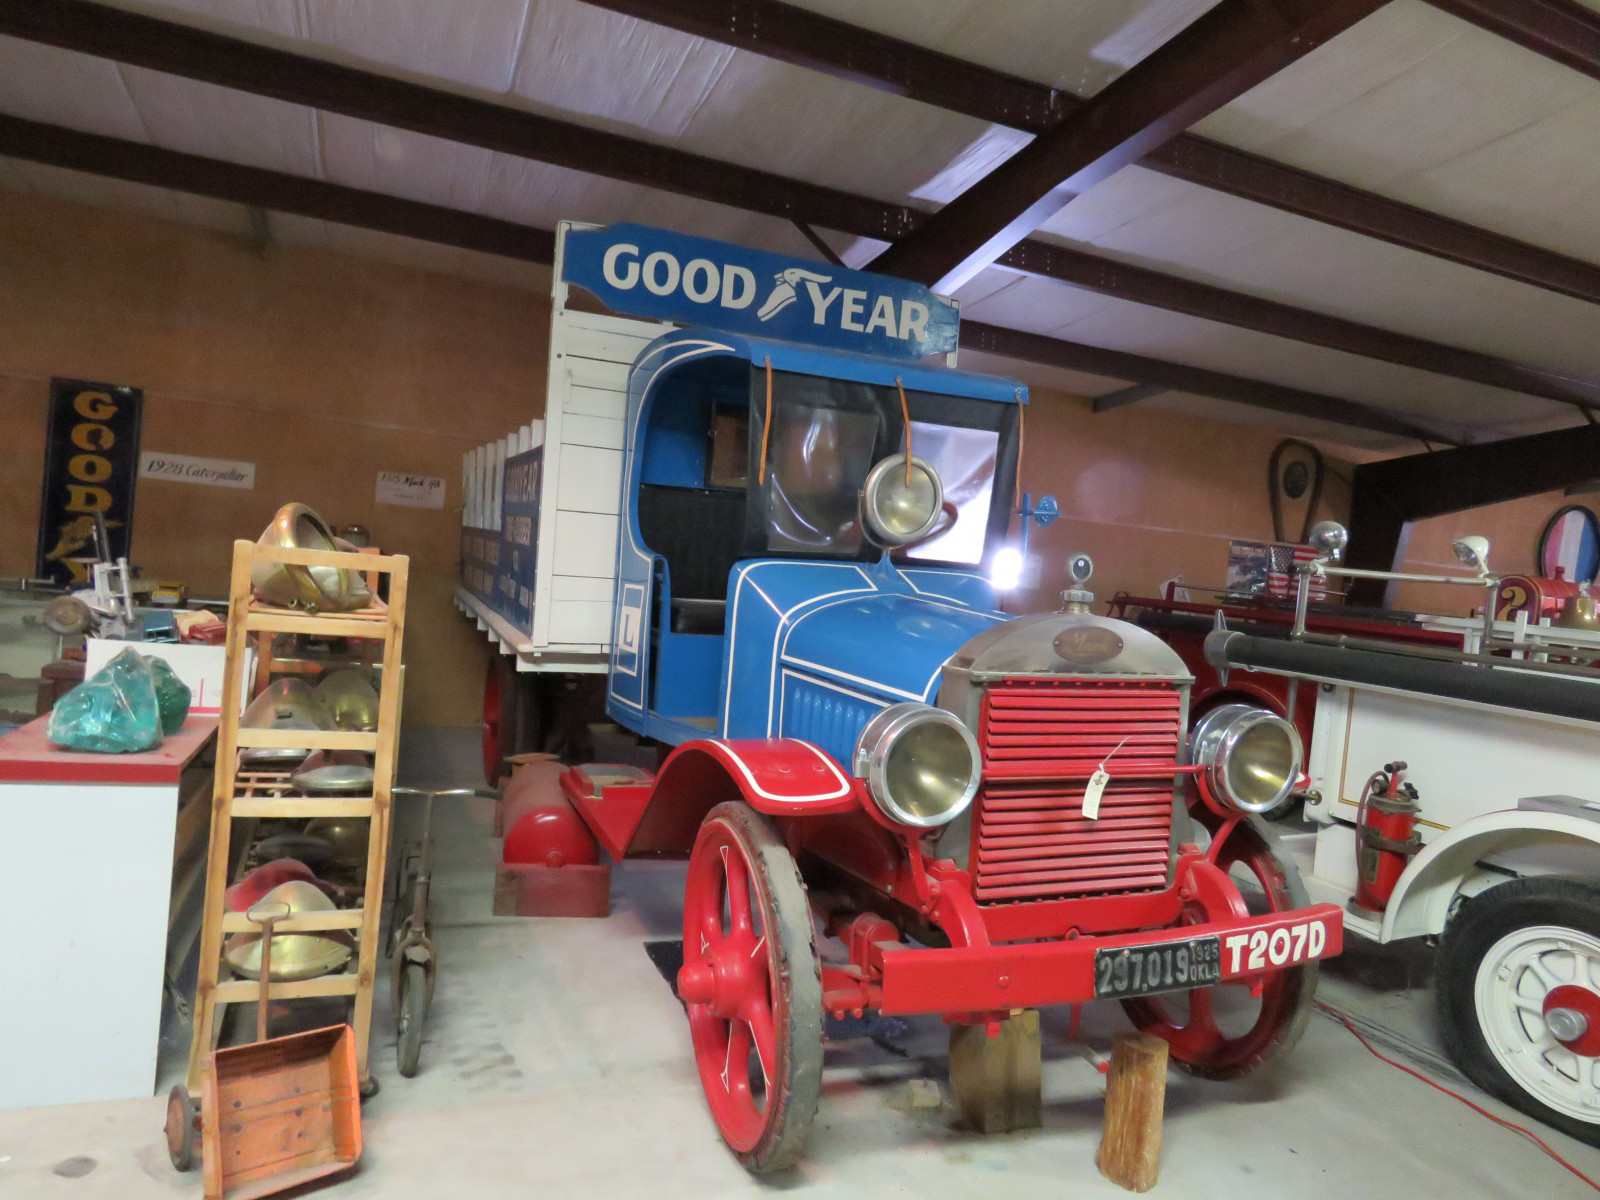 Rare 1925 Mack Model AB 2 Ton Truck with Goodyear Advertising - Image 2